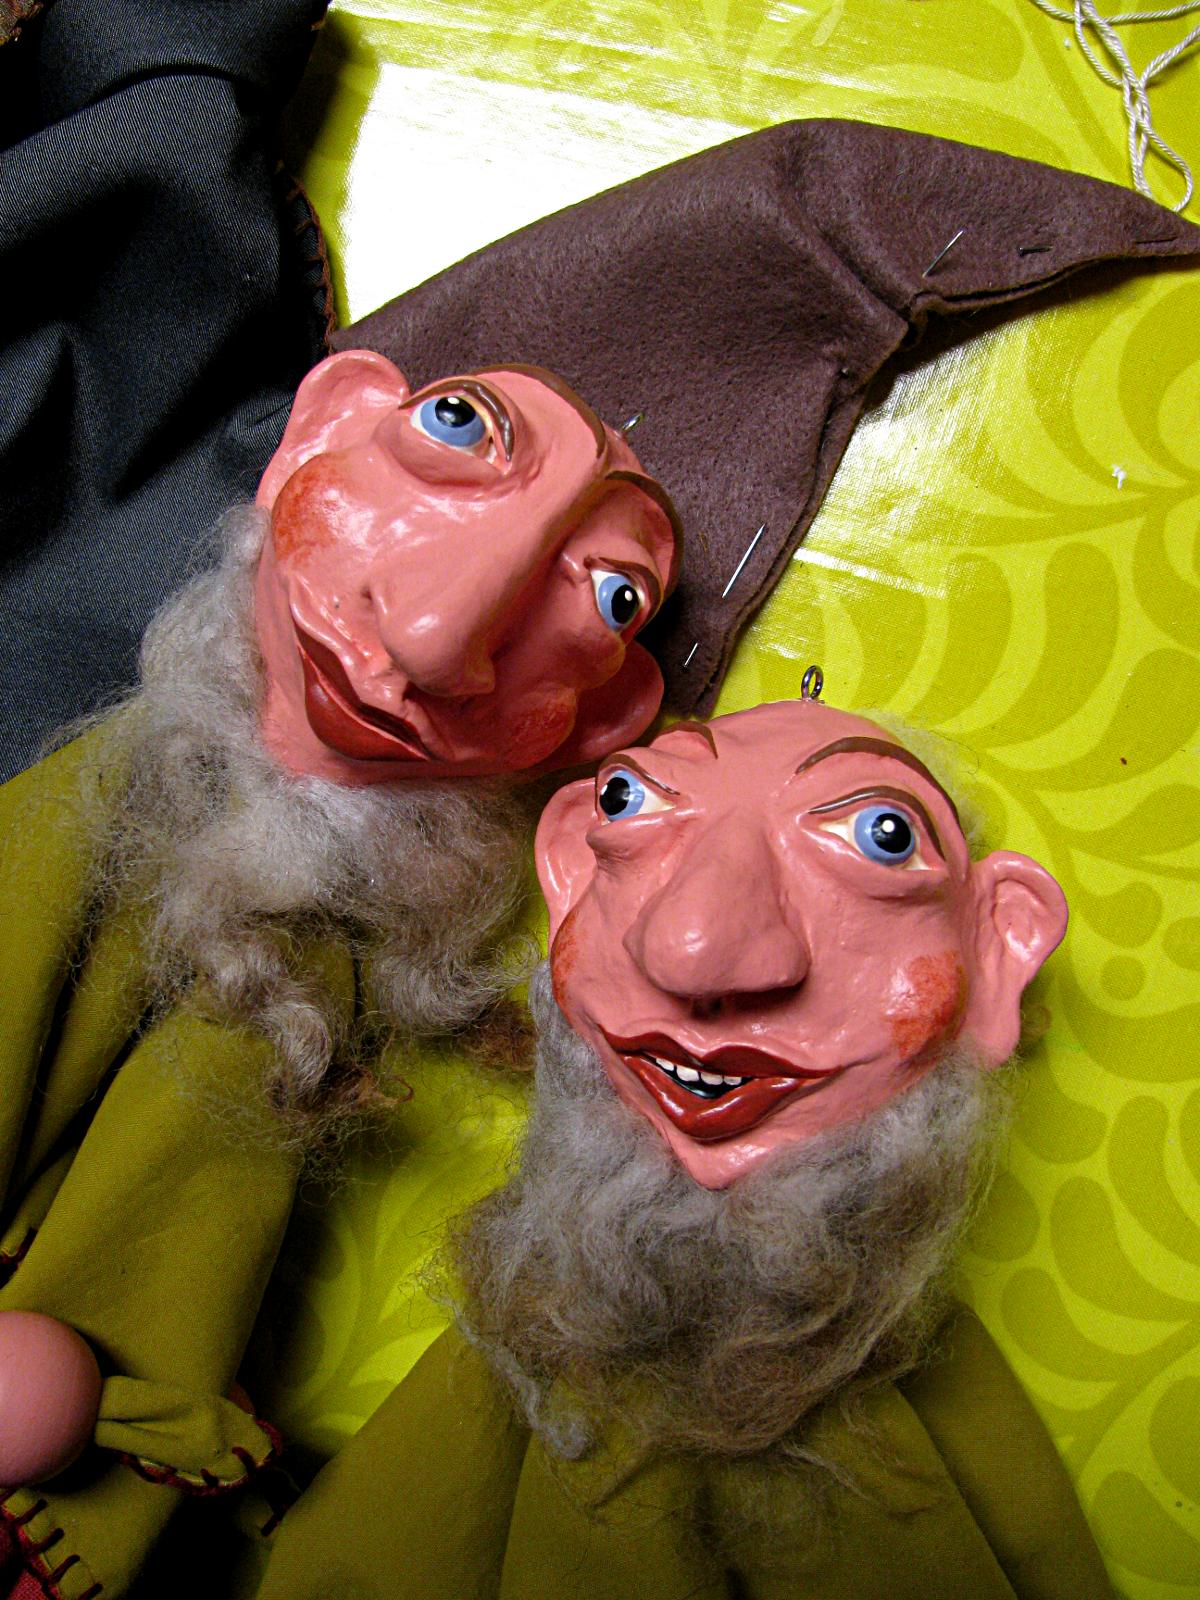 Christiane Drieling: dwarf marionettes, works in progress